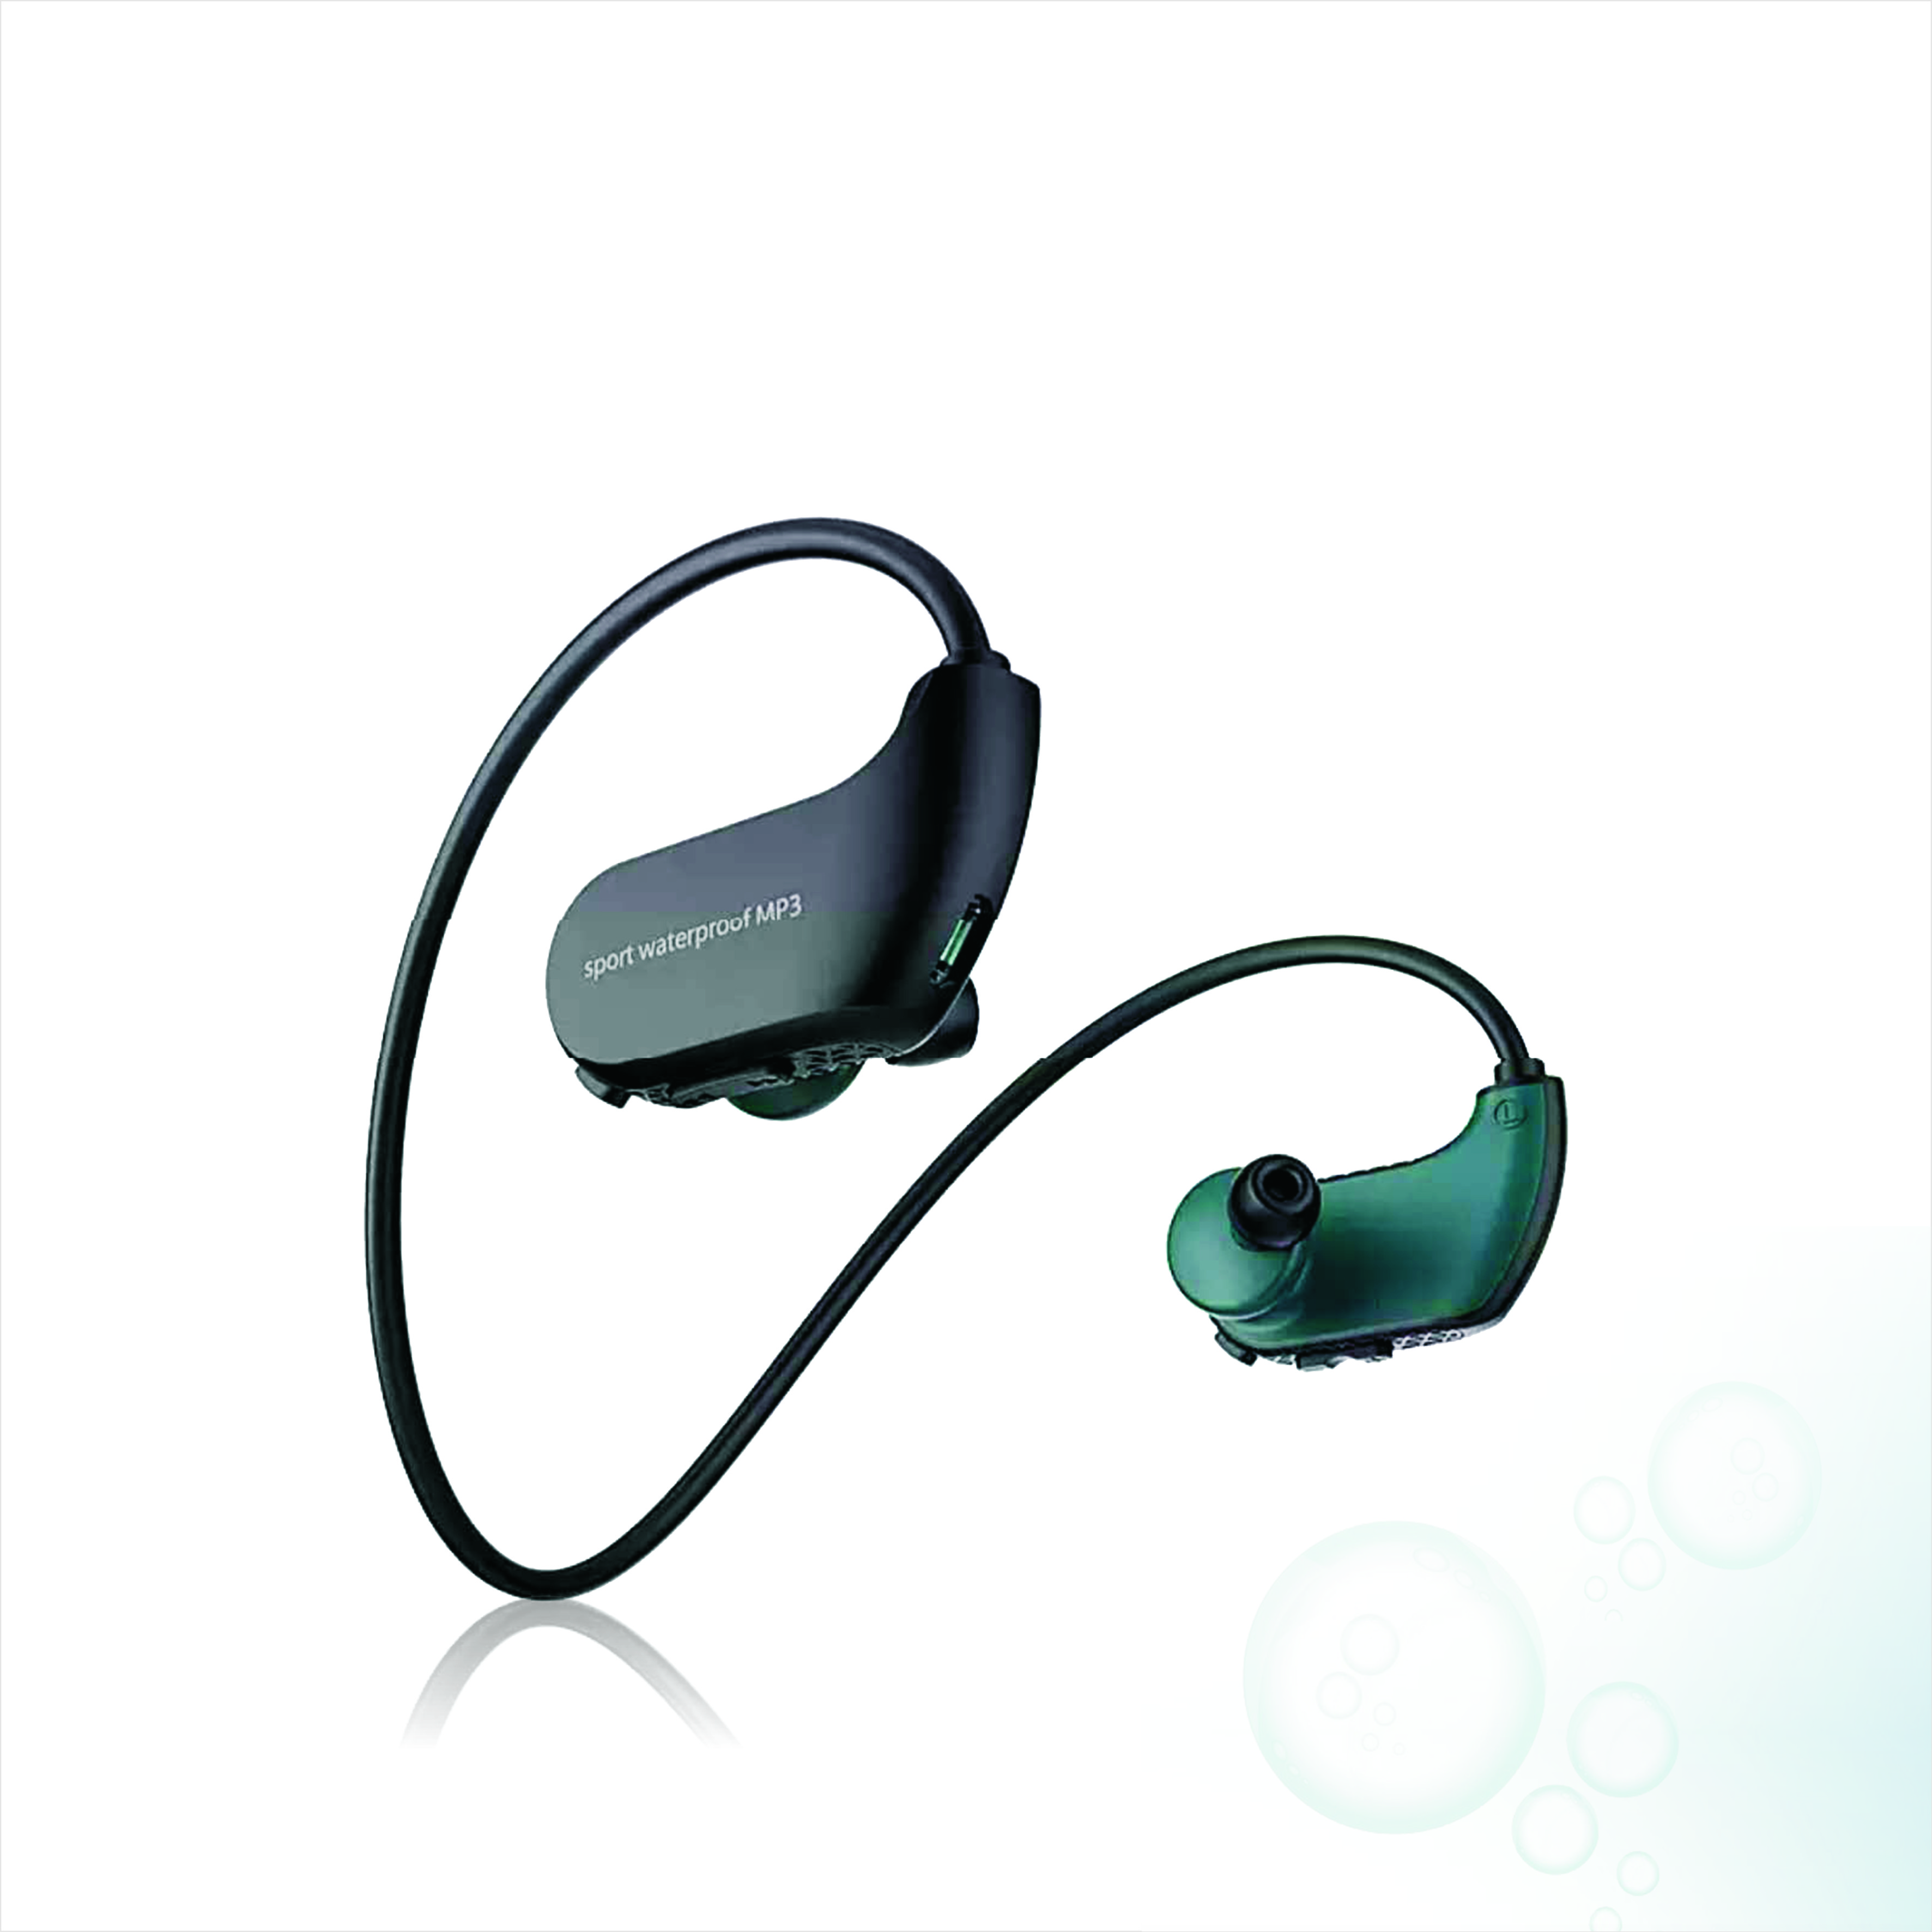 Swimming <strong>mp3</strong> diving waterproof sports <strong>MP3</strong> player in Ear build in 100mAh Battery IPX-8